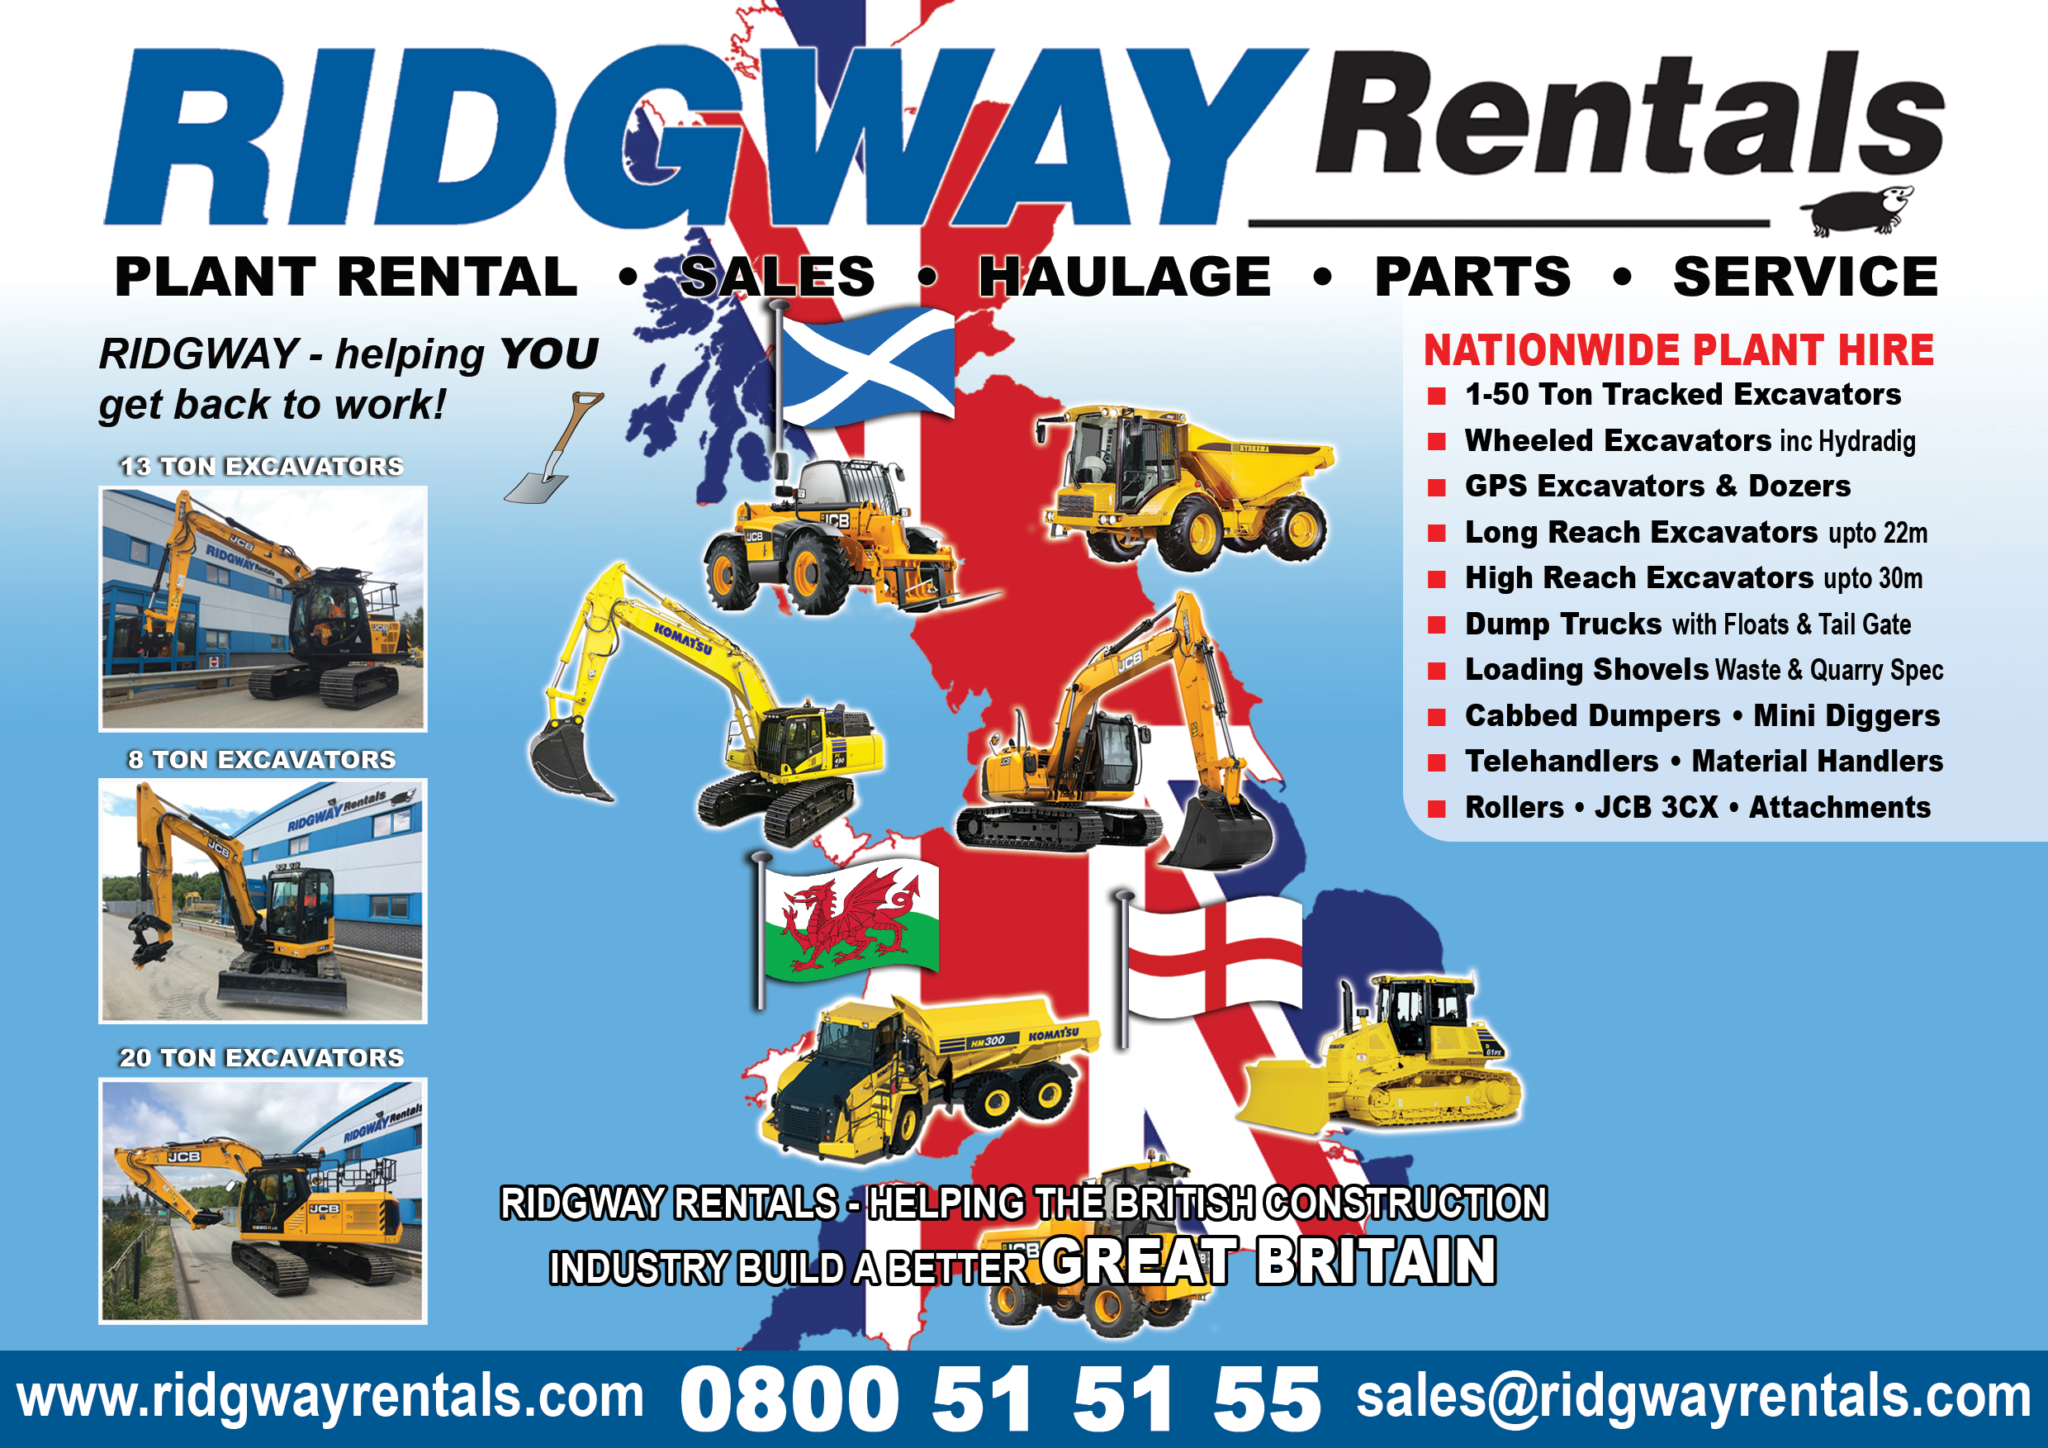 Ridgway Plant Hire Offers